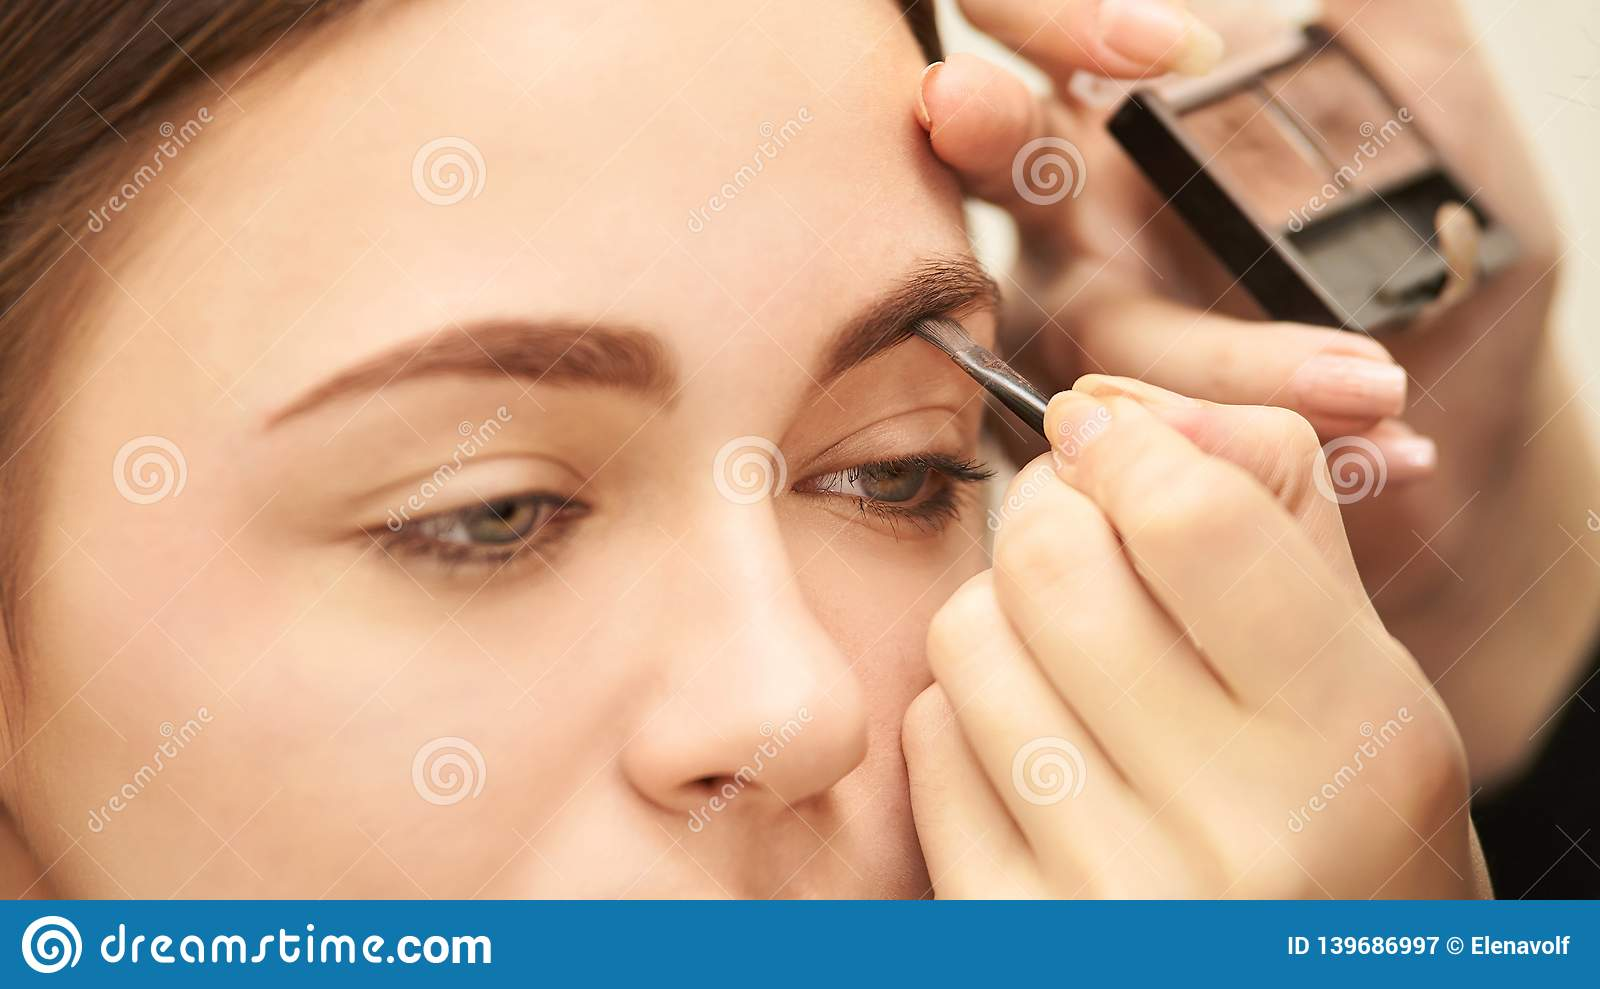 Nude Look Makeup Professional Artist Apply Face Mascara. Woman Beauty Model. Nature Nude Look. Contour Foundation Stock Image - Image Of Highlighter, Blush: 139686997